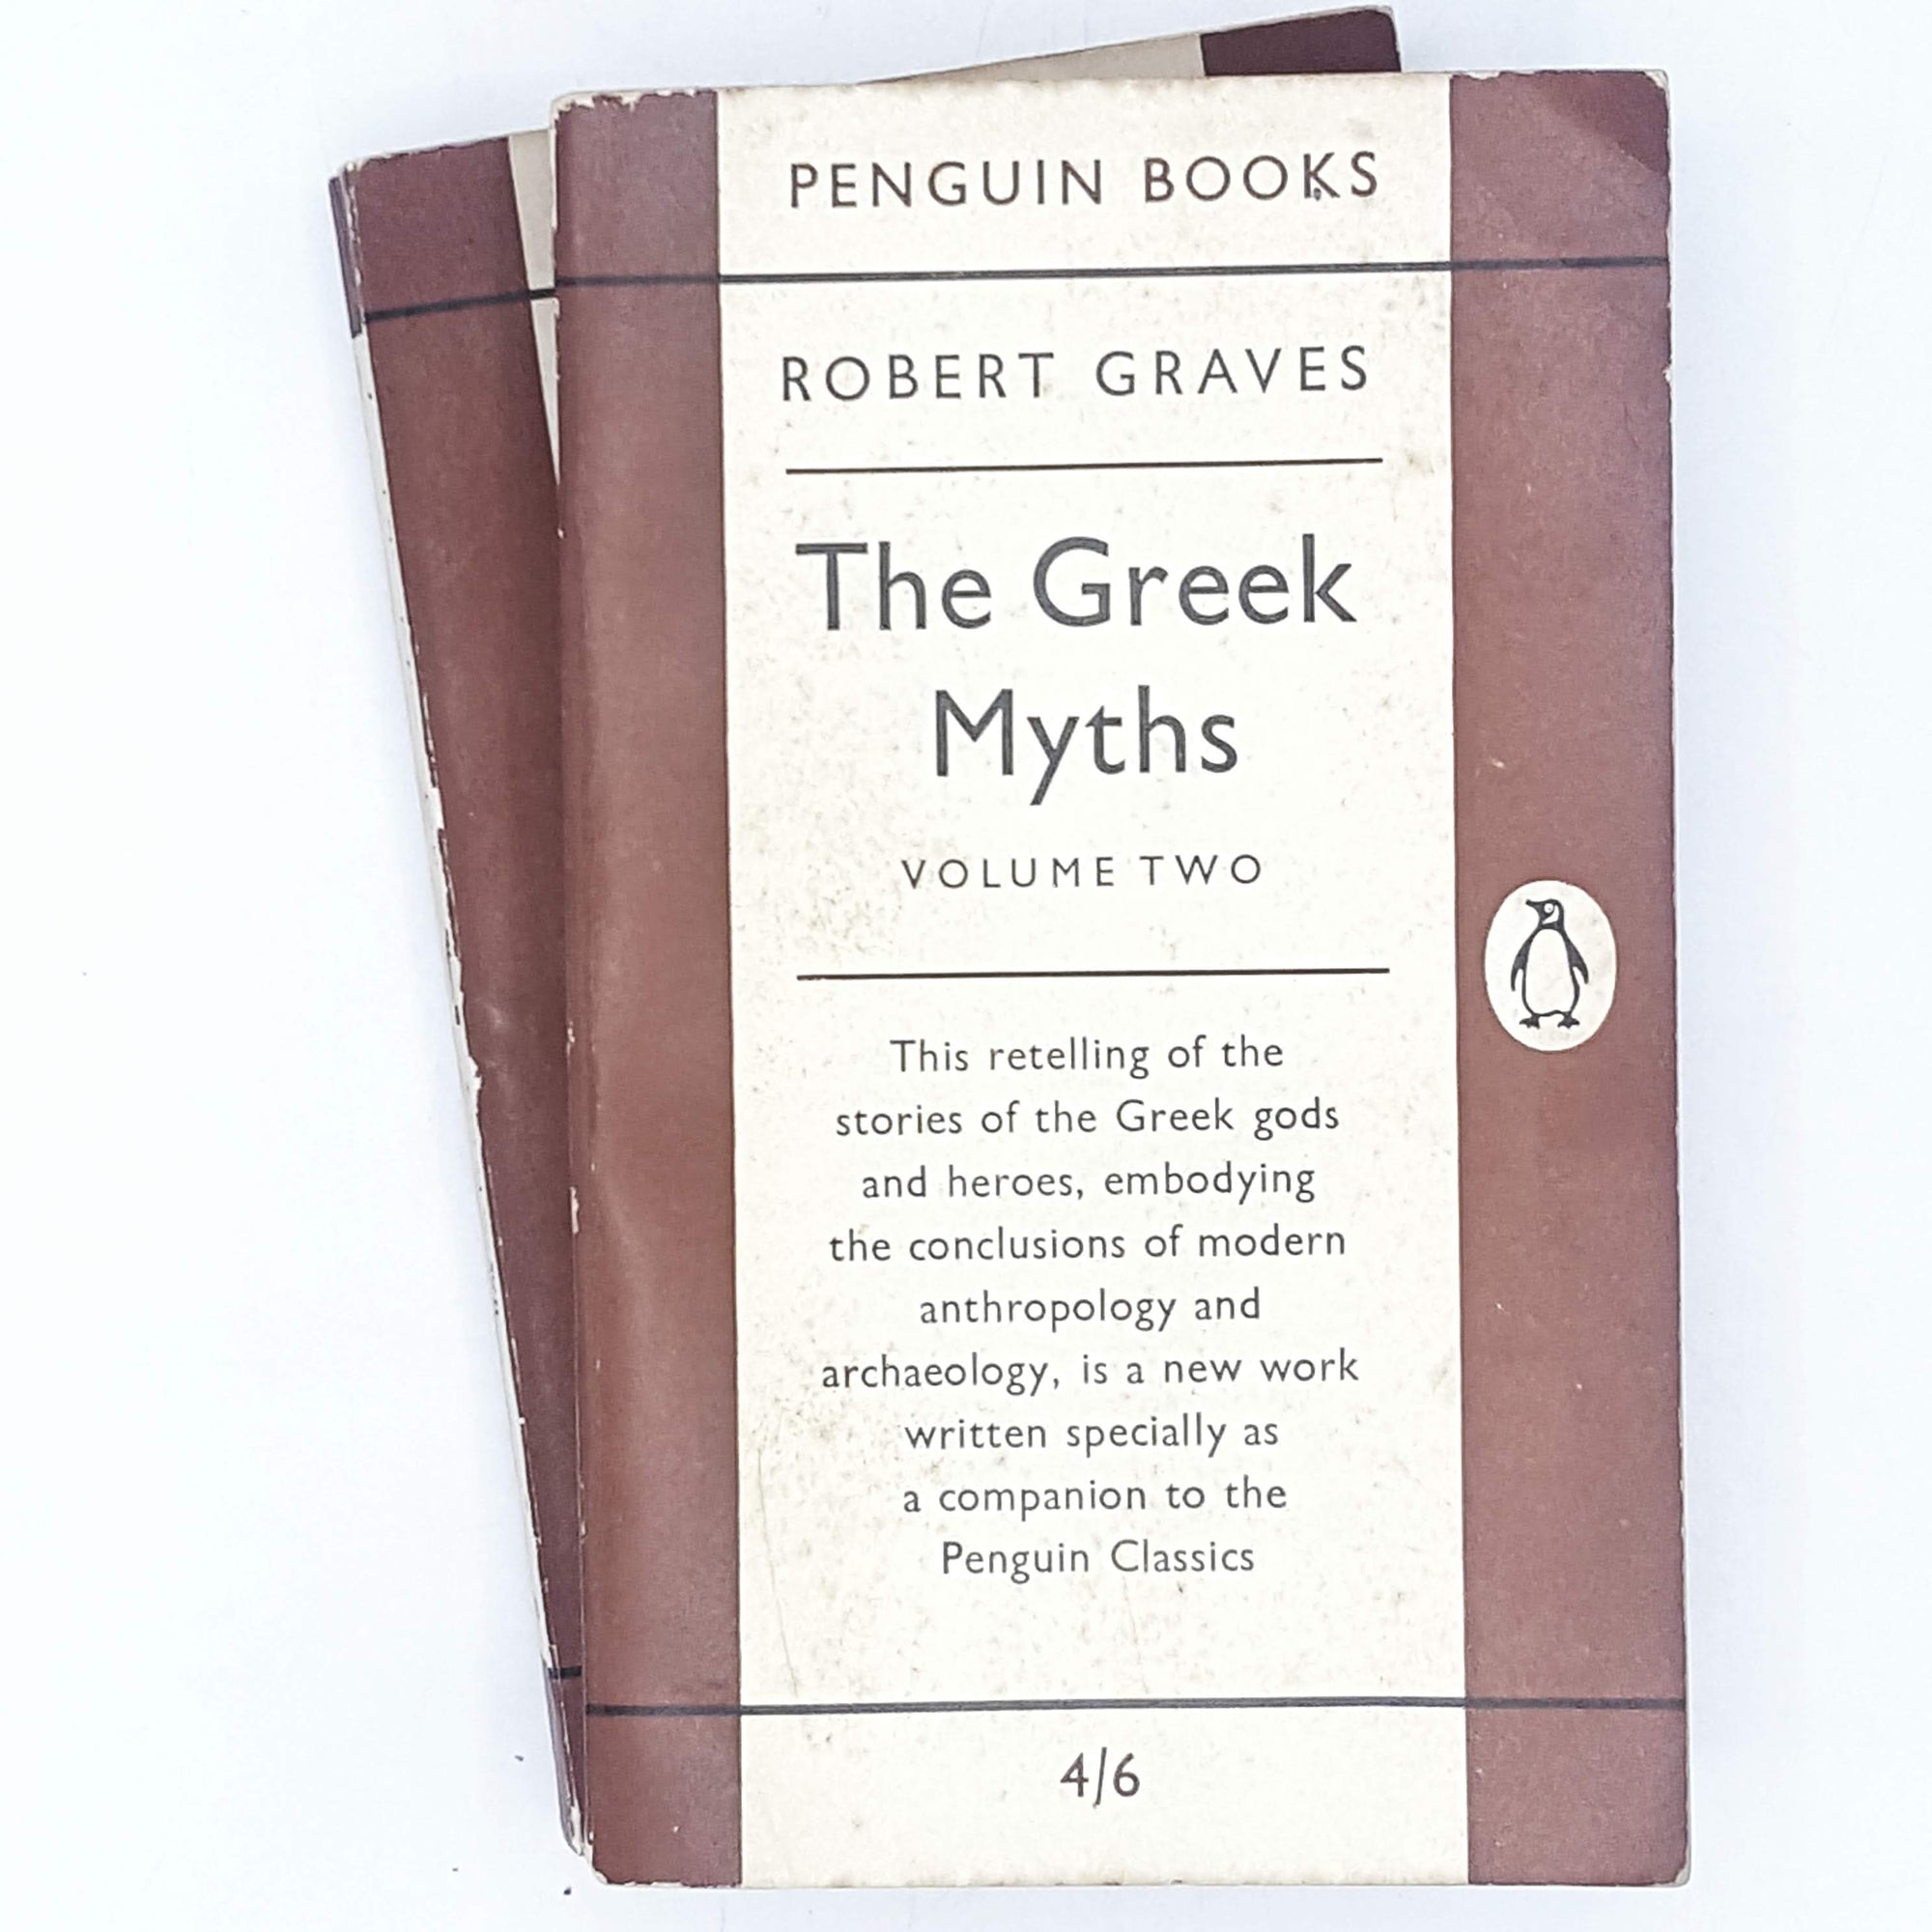 brown-collection-history-vintage-penguin-country-library-book